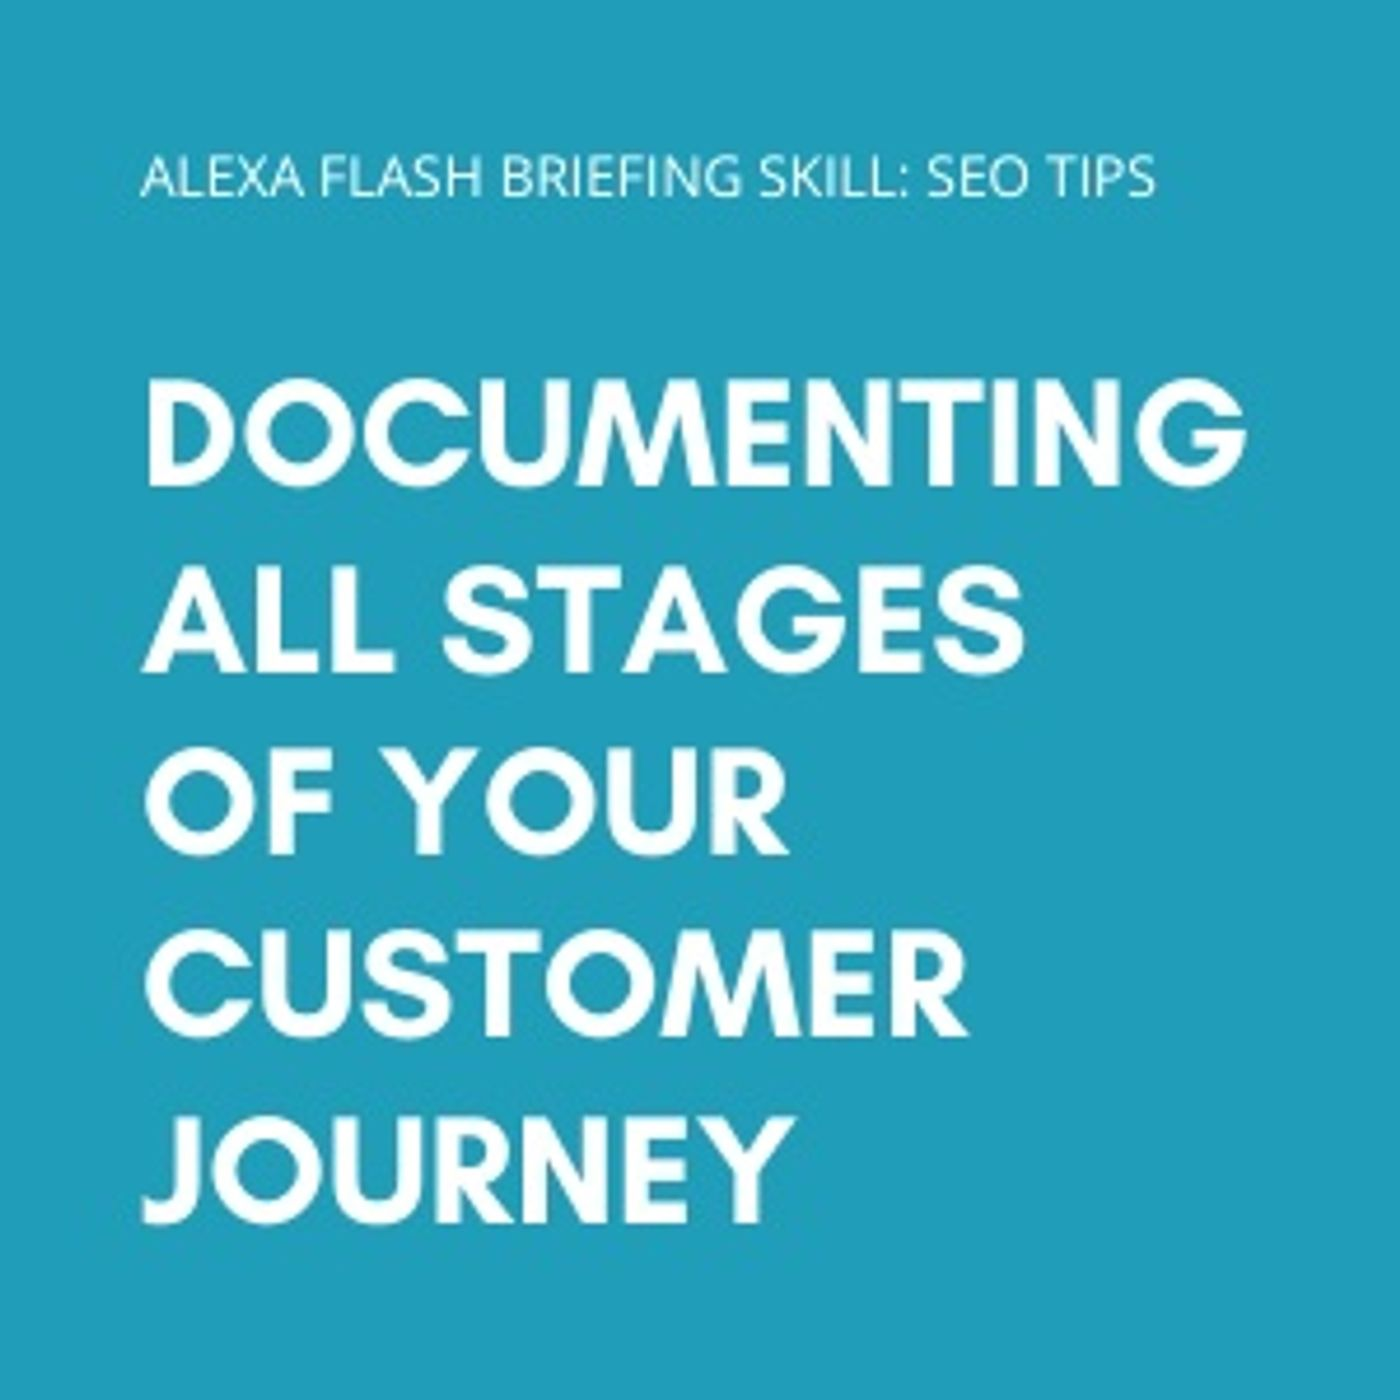 Documenting all stages of your customer journey